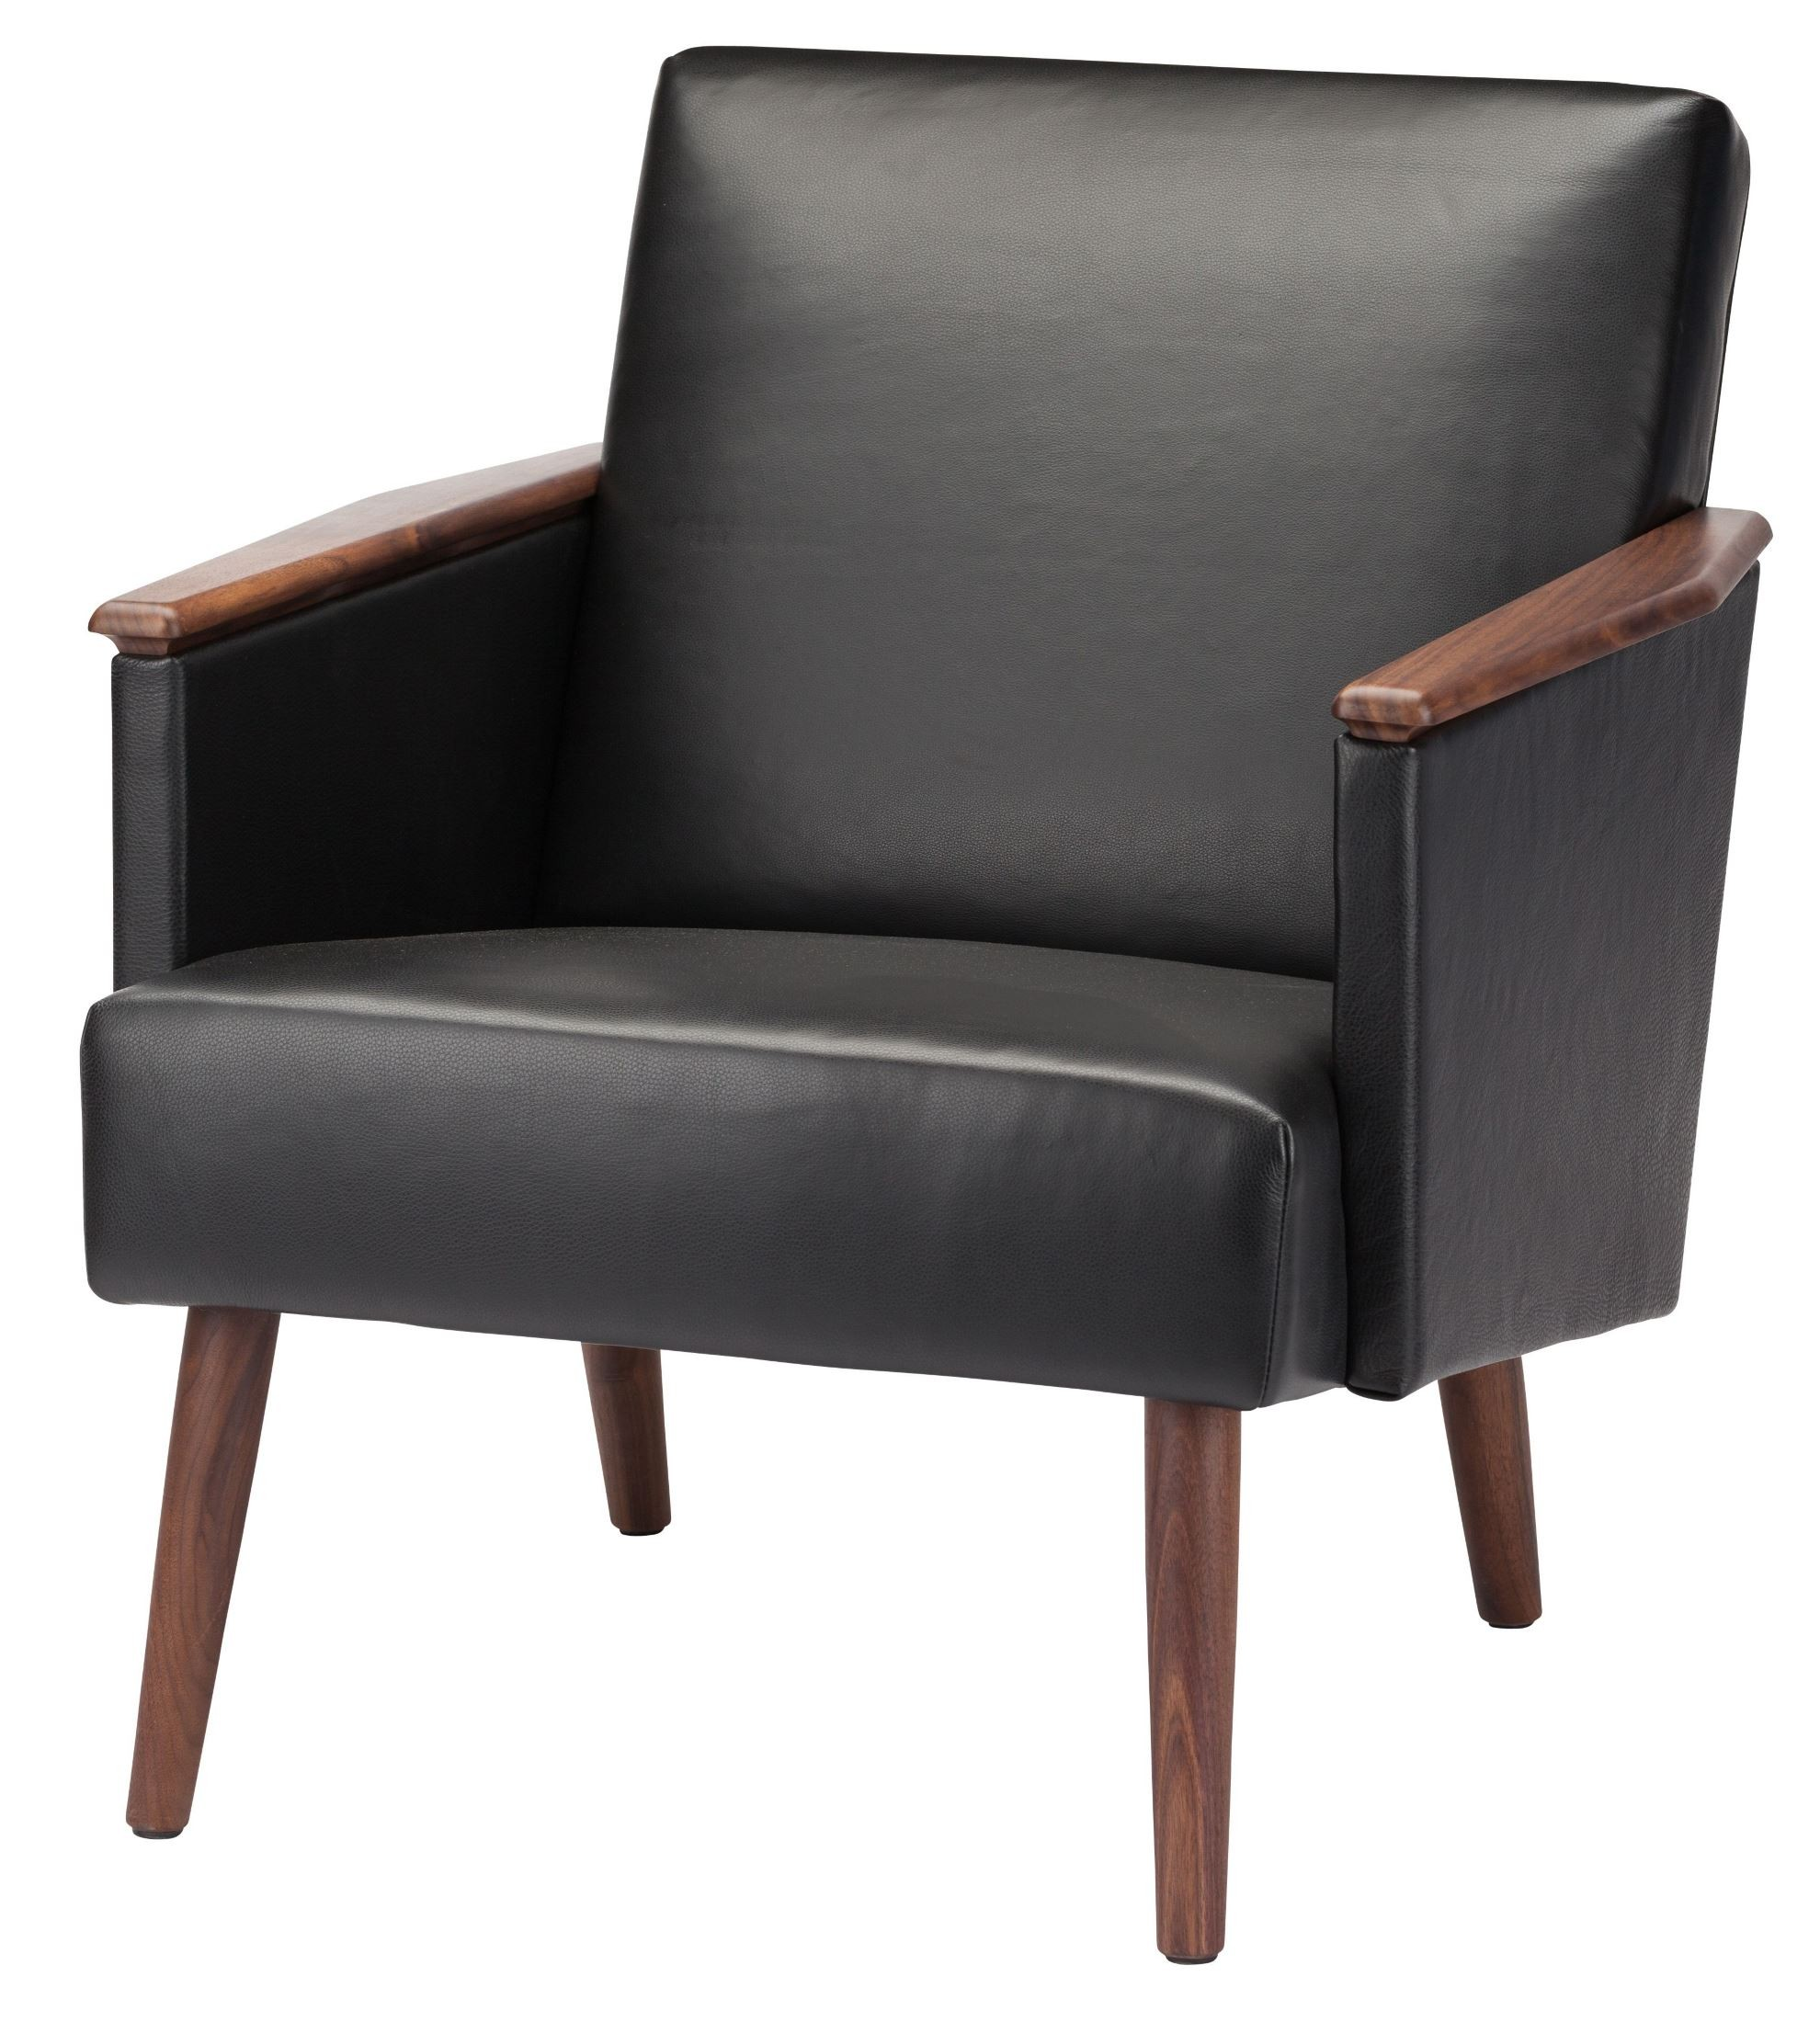 Jasper black leather occasional chair hgem636 nuevo for Occasional furniture